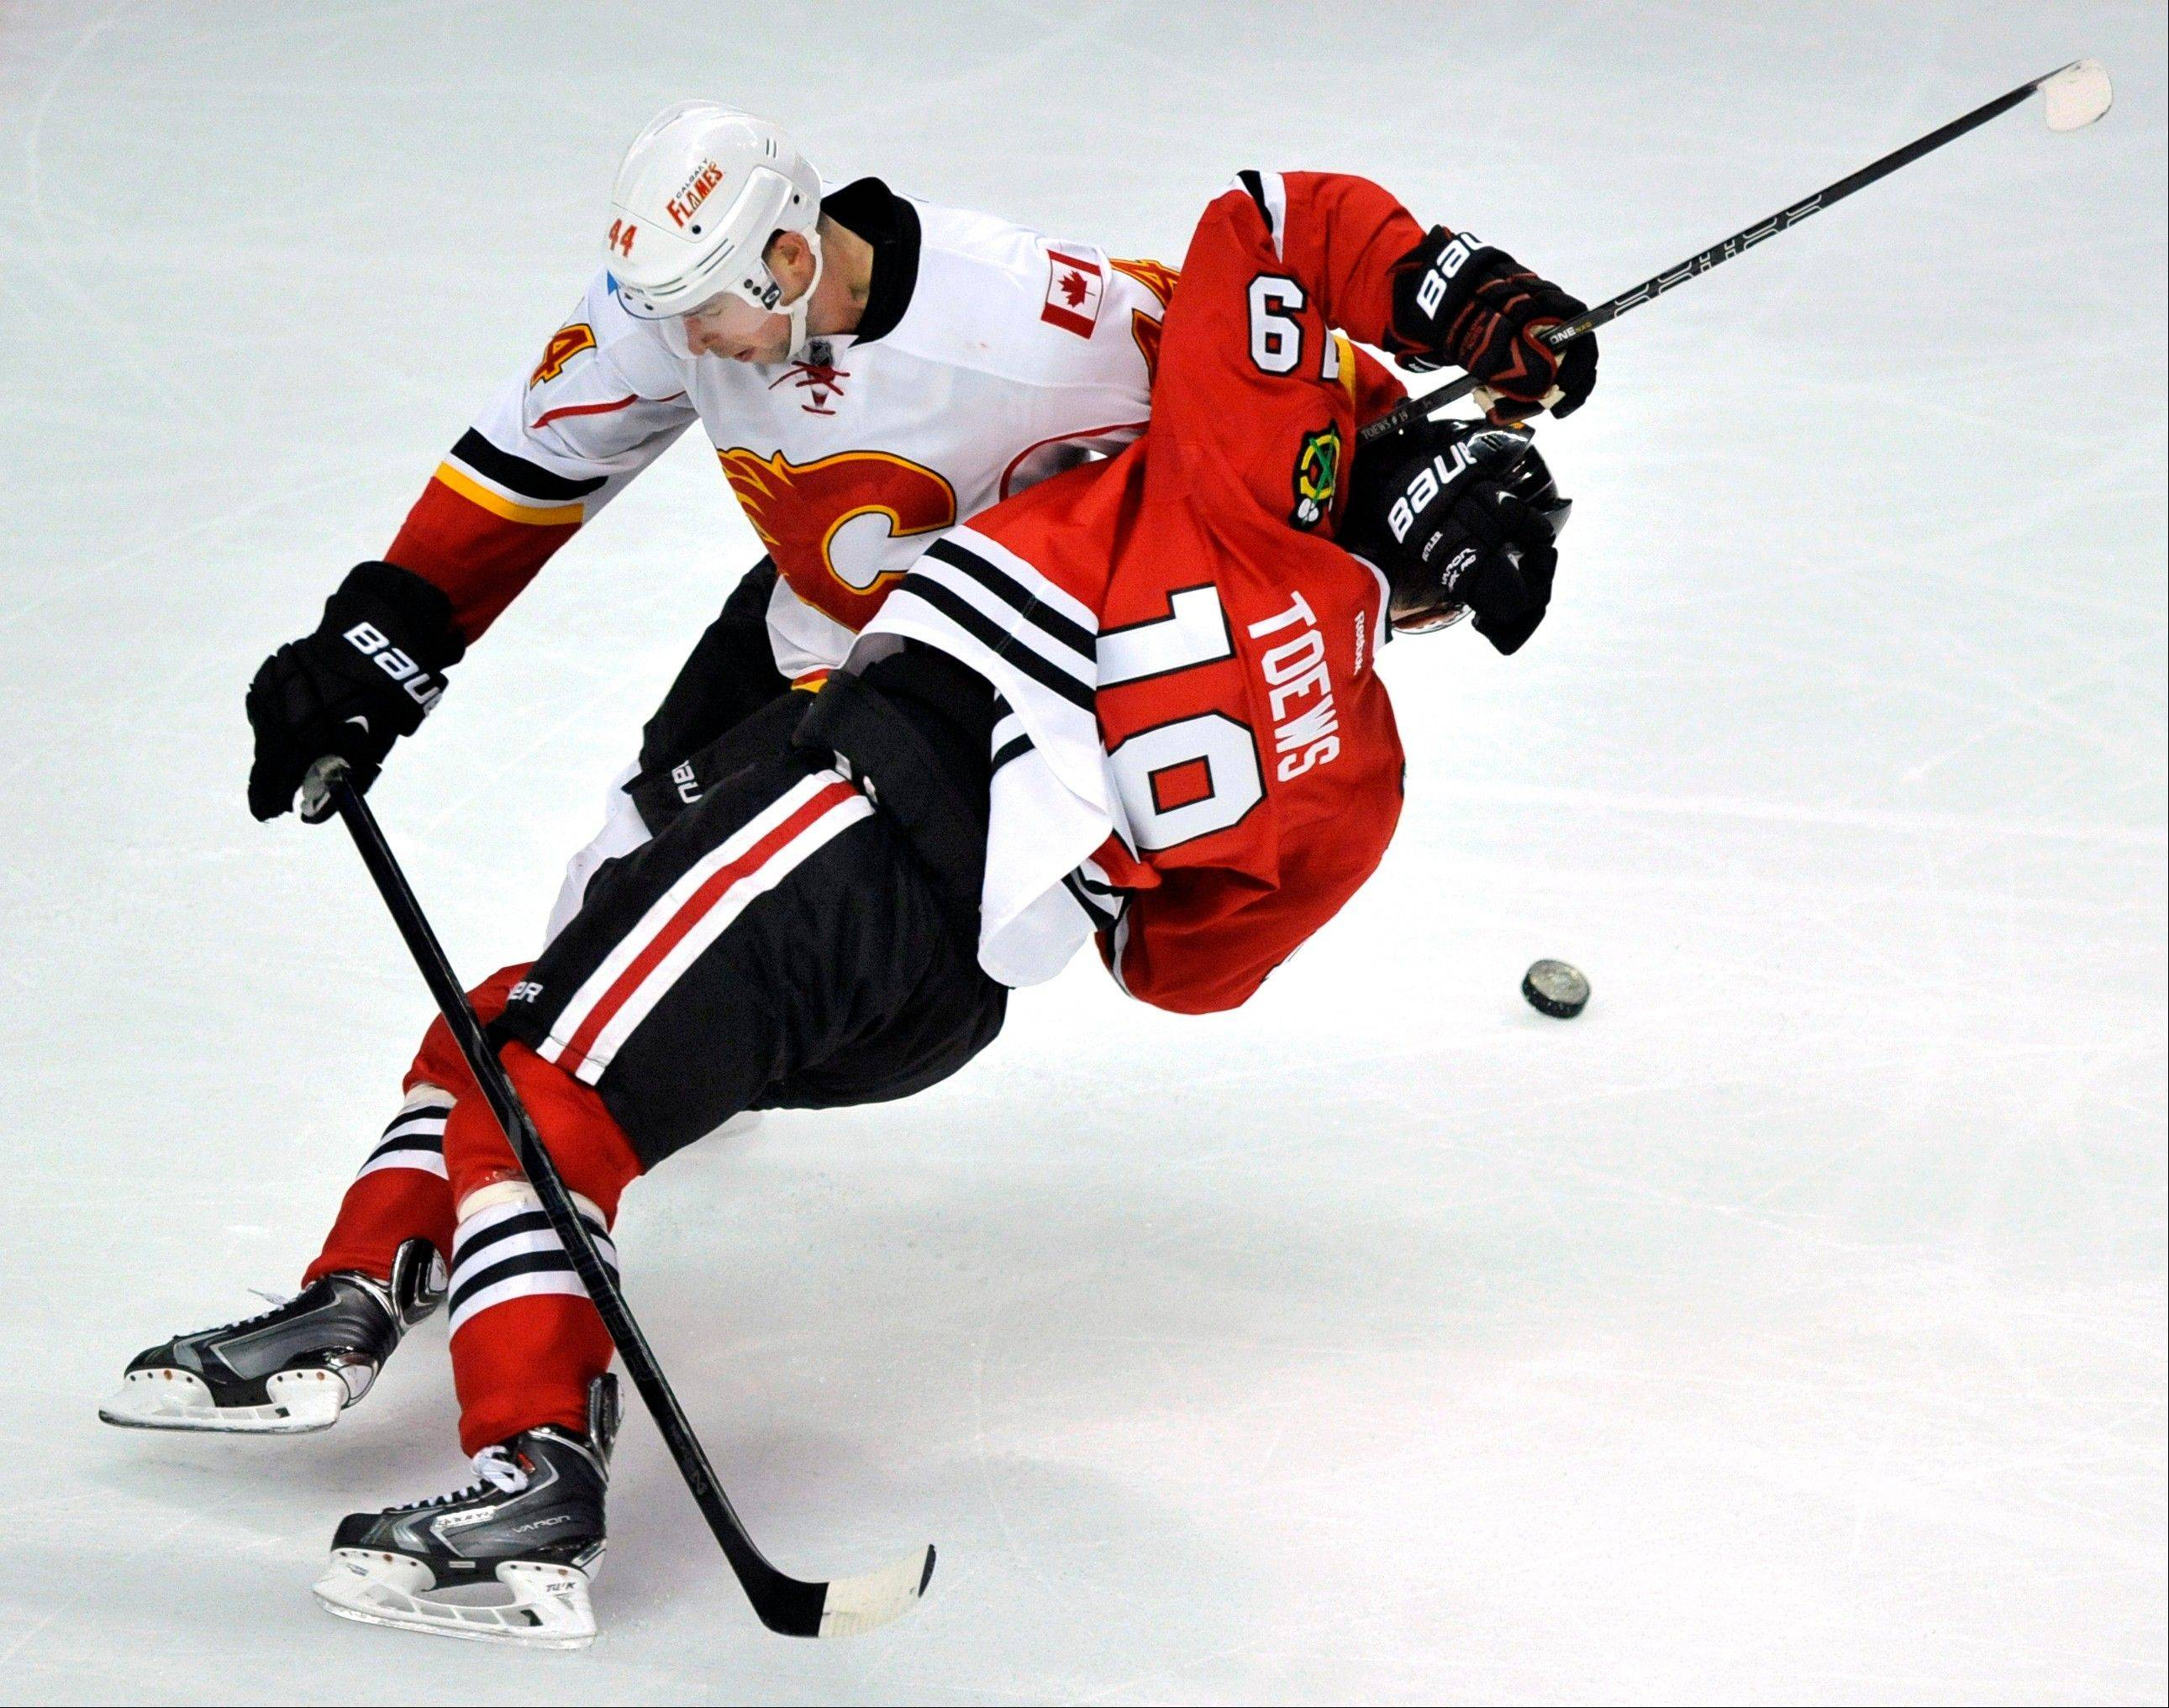 Blackhawks captain Jonathan Toews, right, battles Calgary Flames skater Chris Butler for the puck during the third period of an NHL hockey game in Chicago, Sunday, Nov. 3, 2013. Calgary won 3-2 in overtime.